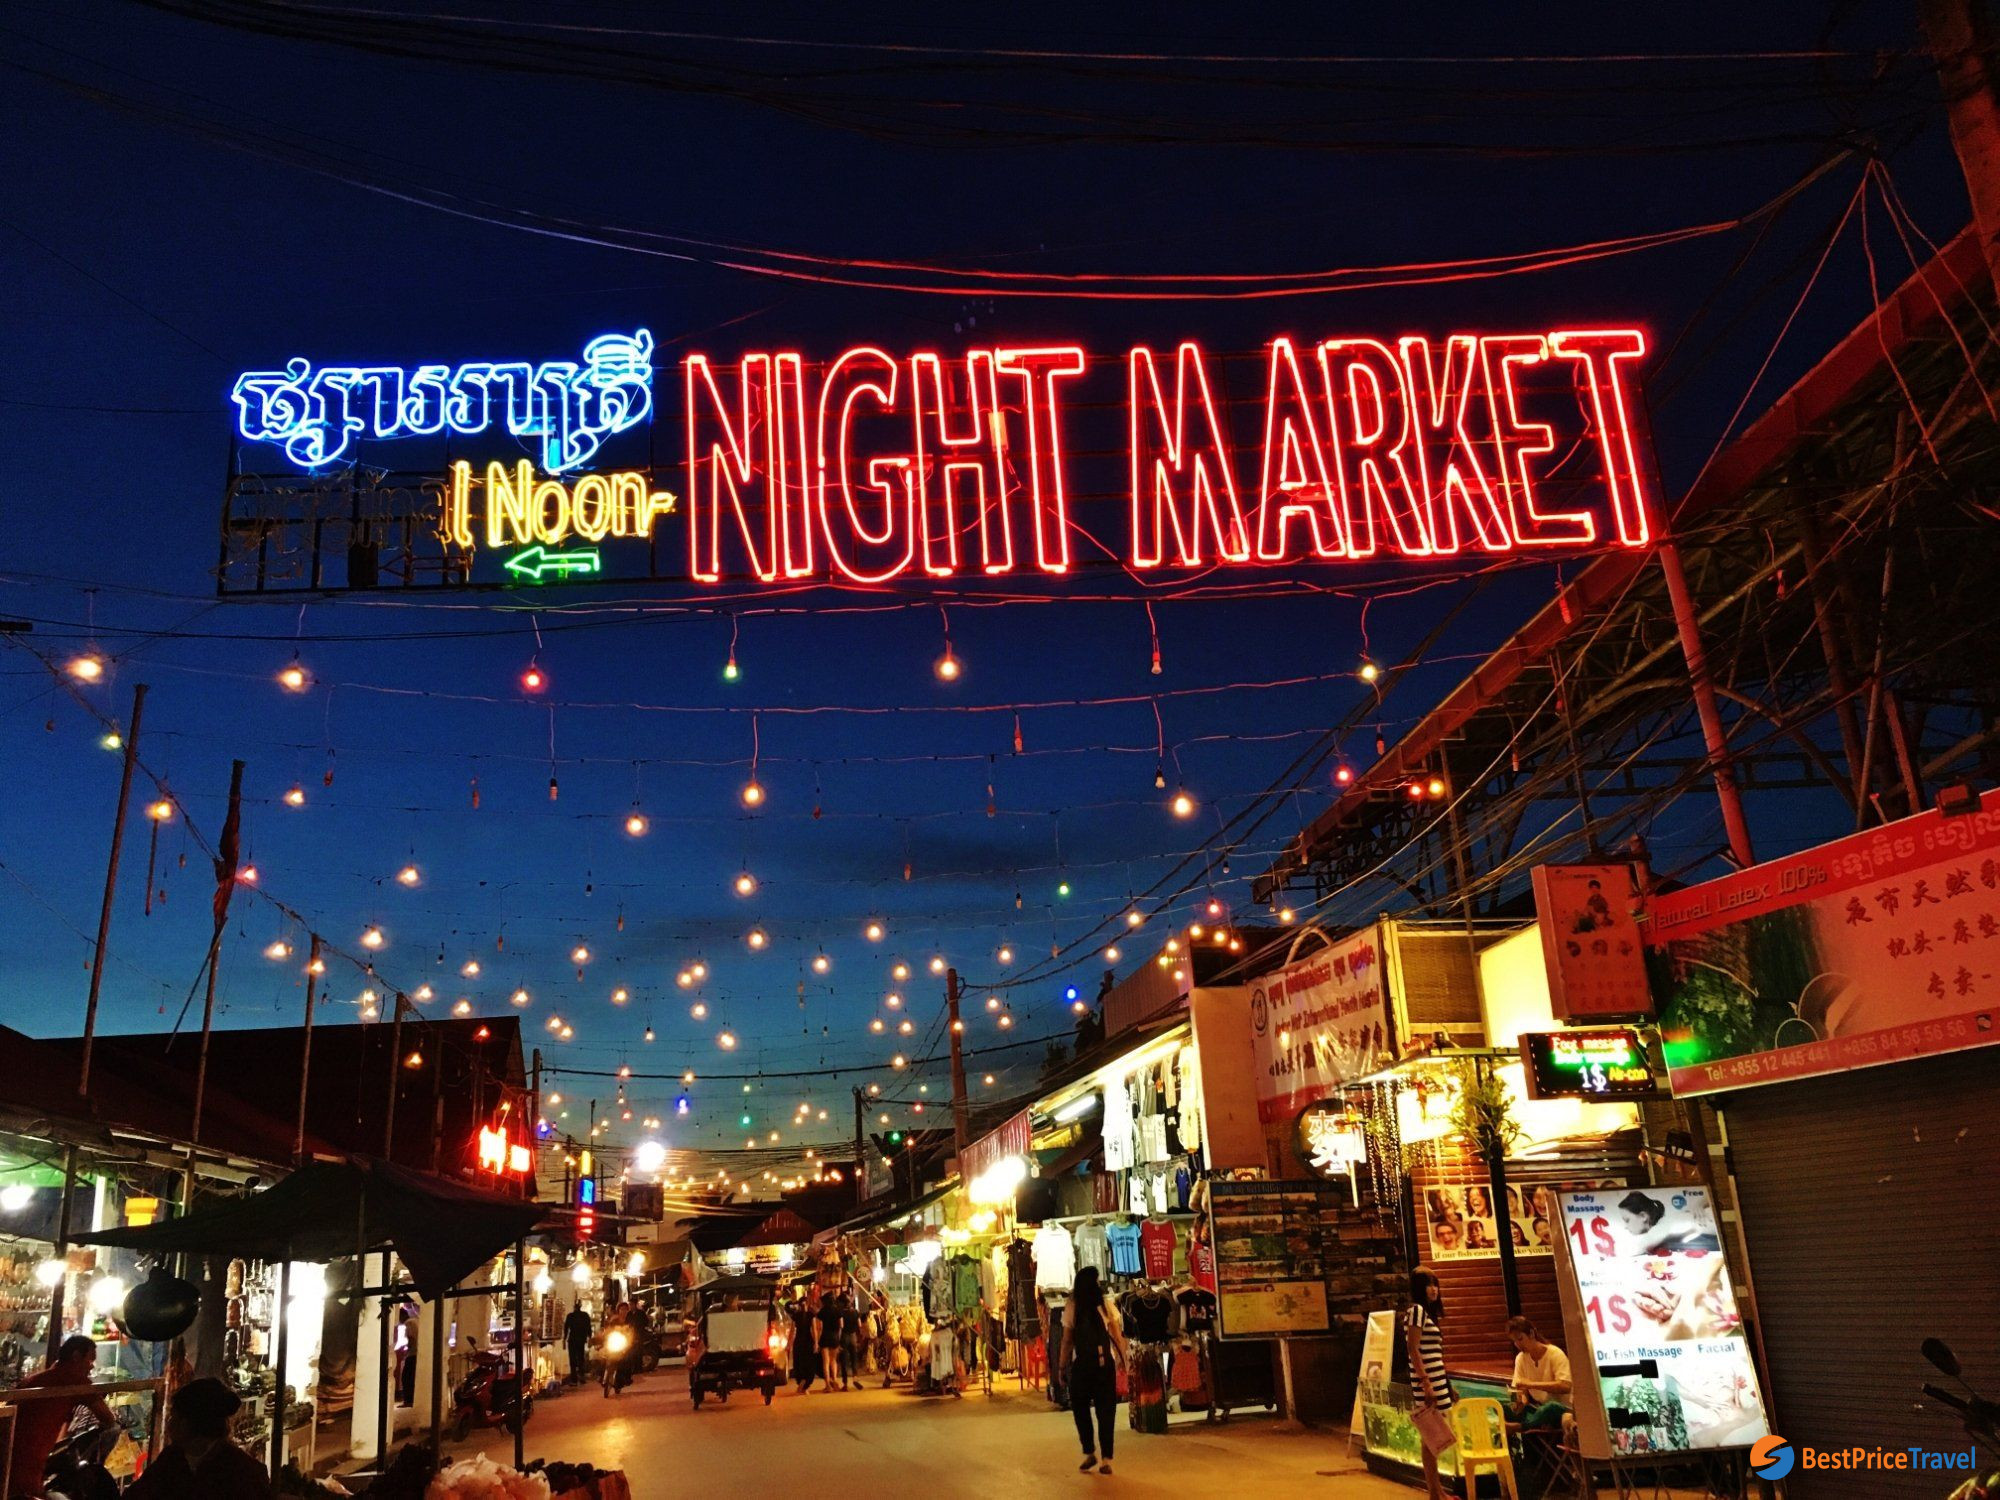 Angkor Night Market in Siem Reap -  5 Must-see Attractions in Indochina 2020